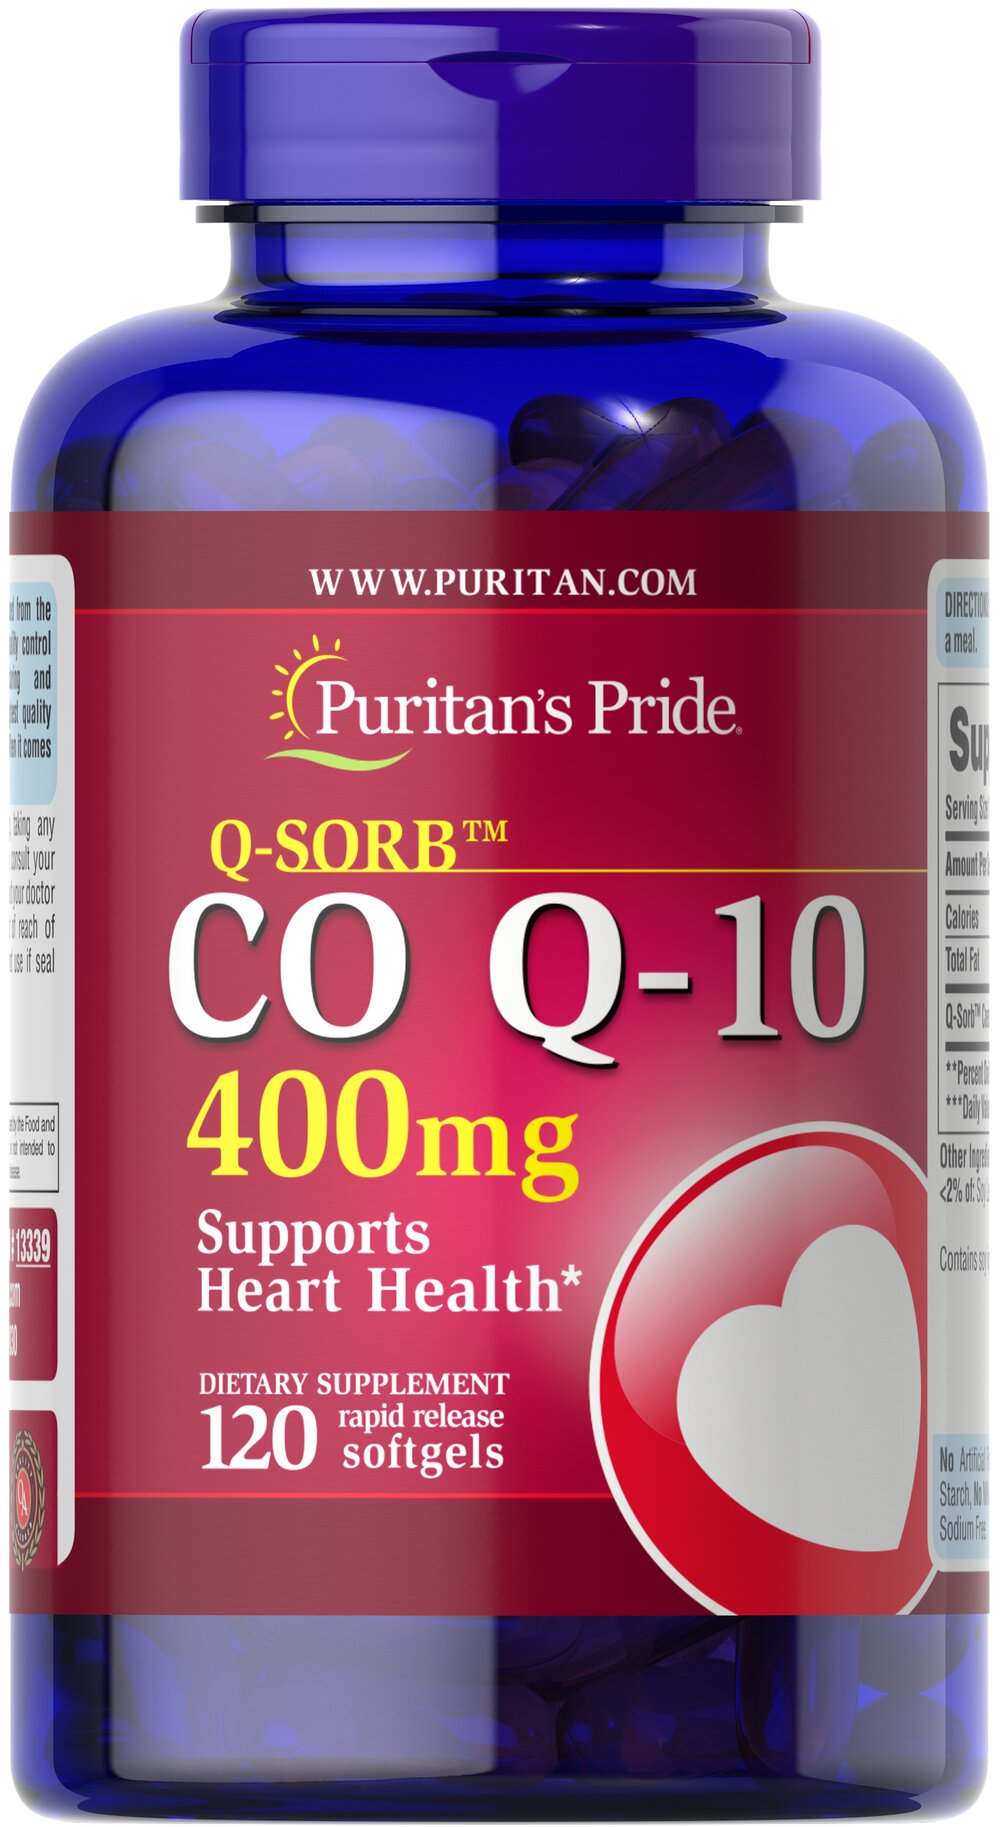 Q-Sorb™ CO Q-10 400 mg  120 Softgels 400 mg $98.99